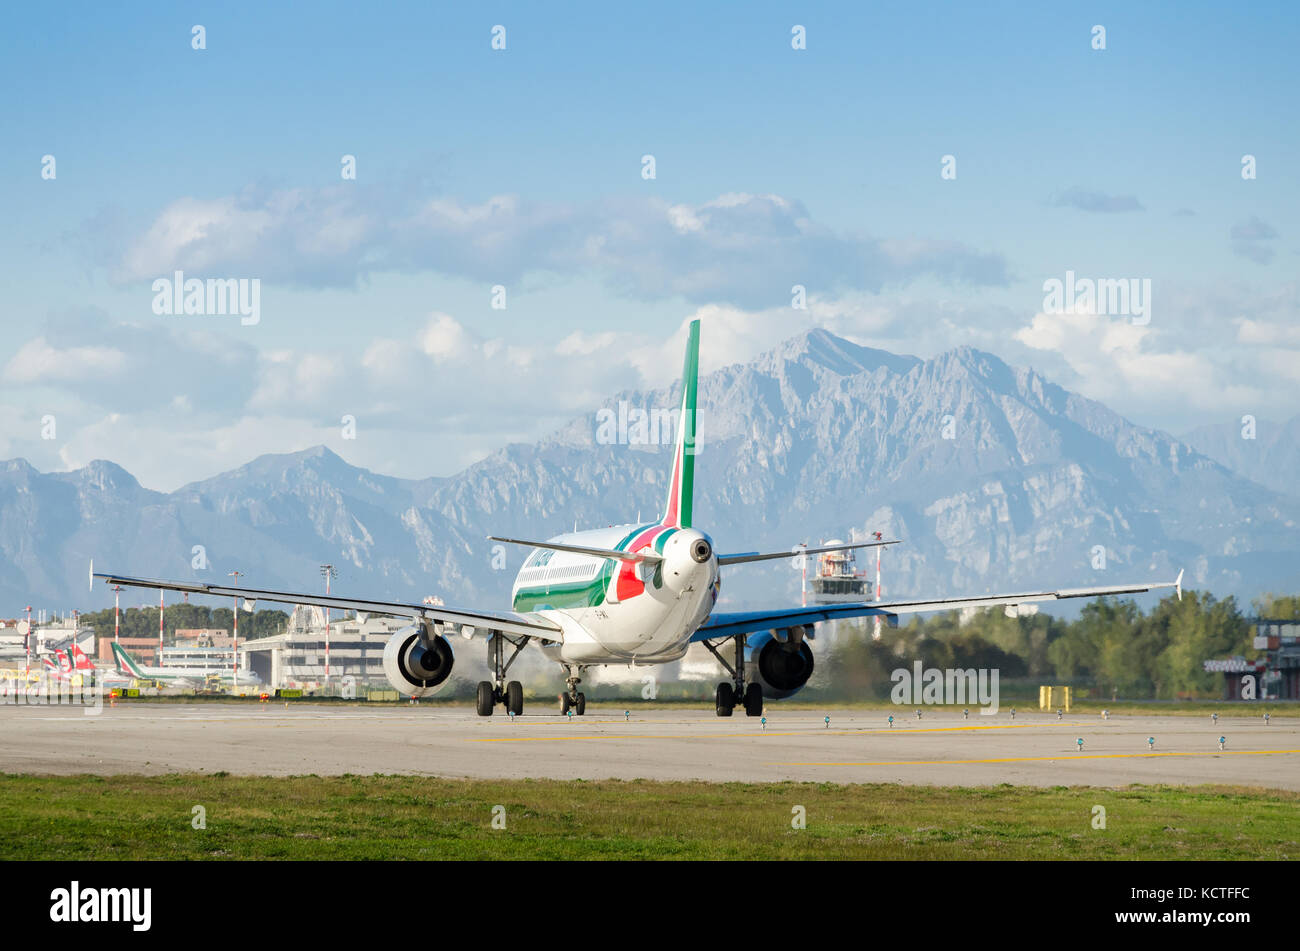 An Alitalia Airbus A319-111 Cityliner taxiing at Milan Linate Airport. These planes operate short-haul flights within - Stock Image